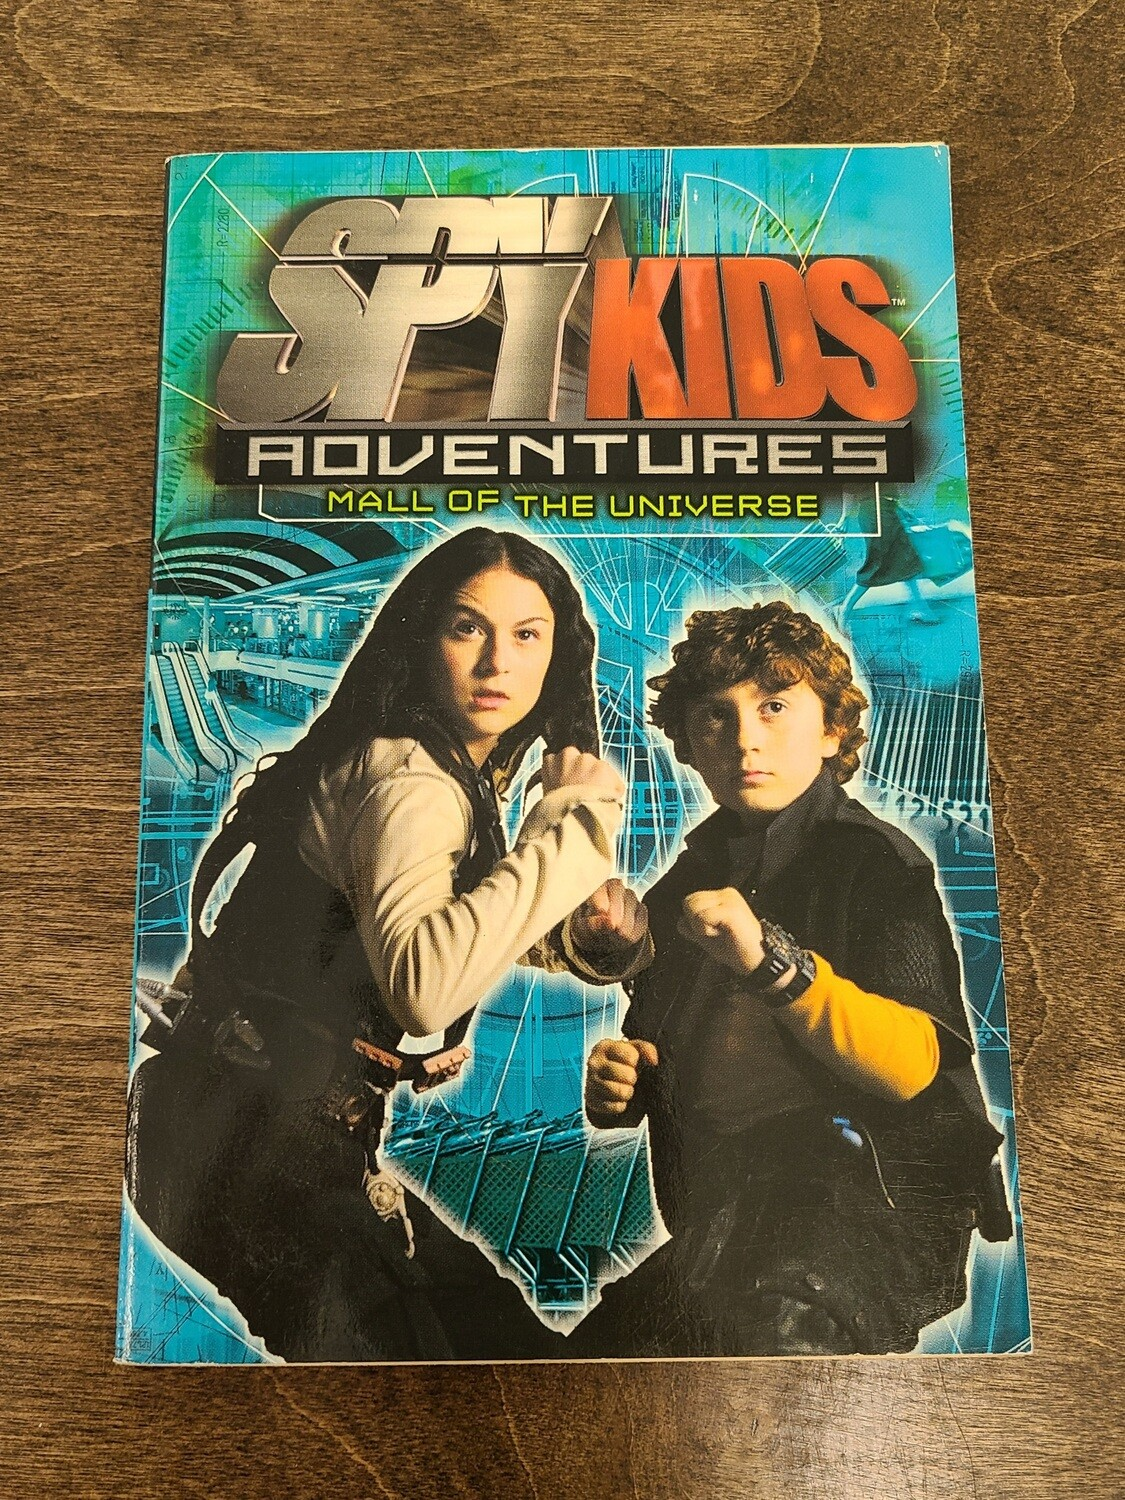 Spy Kids Adventures: Mall of the Universe by Elizabeth Lenhard